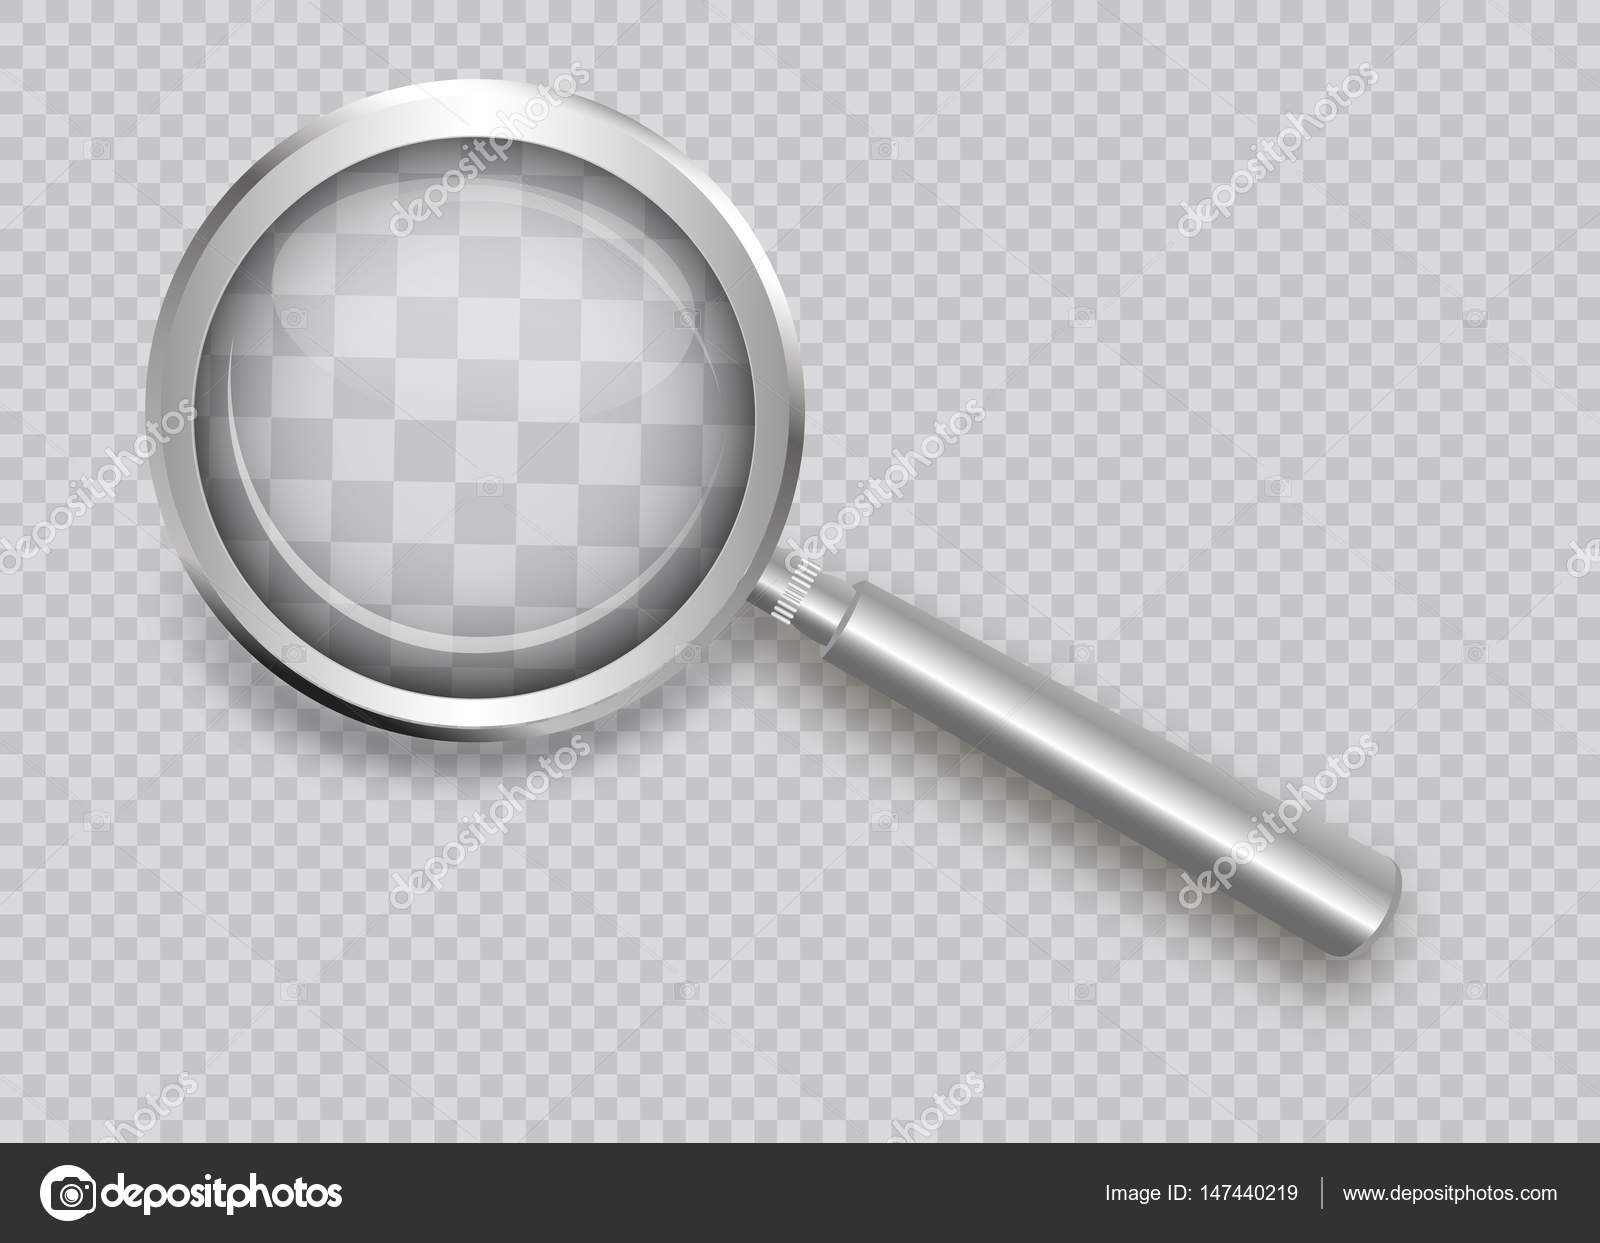 depositphotos_147440219-stock-illustration-magnifying-glass-isolated-on-a Faszinierend Lupe Mit Licht Dekorationen